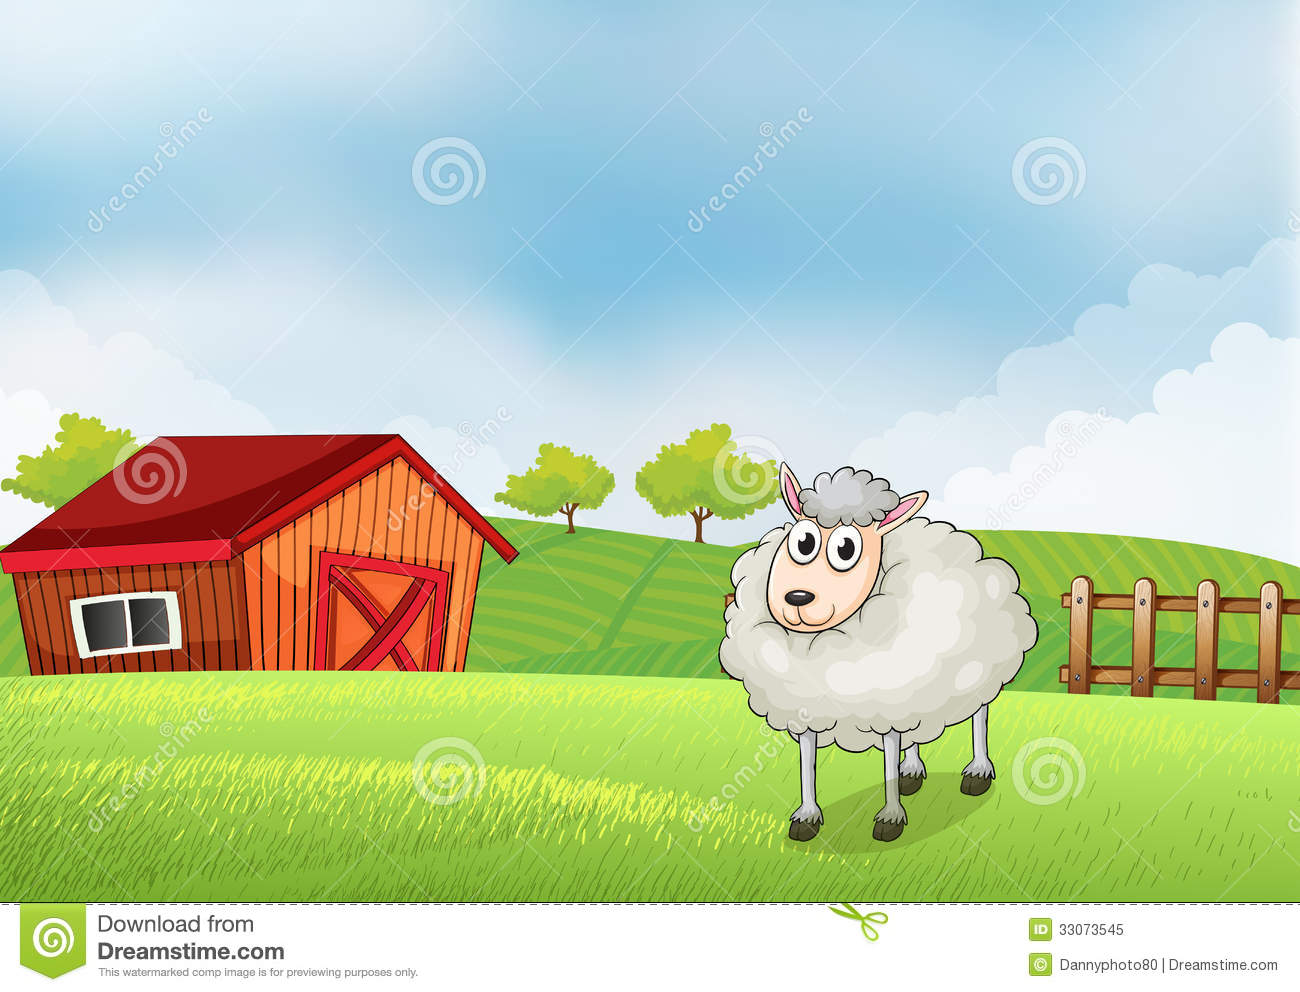 Sheep farming clipart 20 free Cliparts | Download images ...